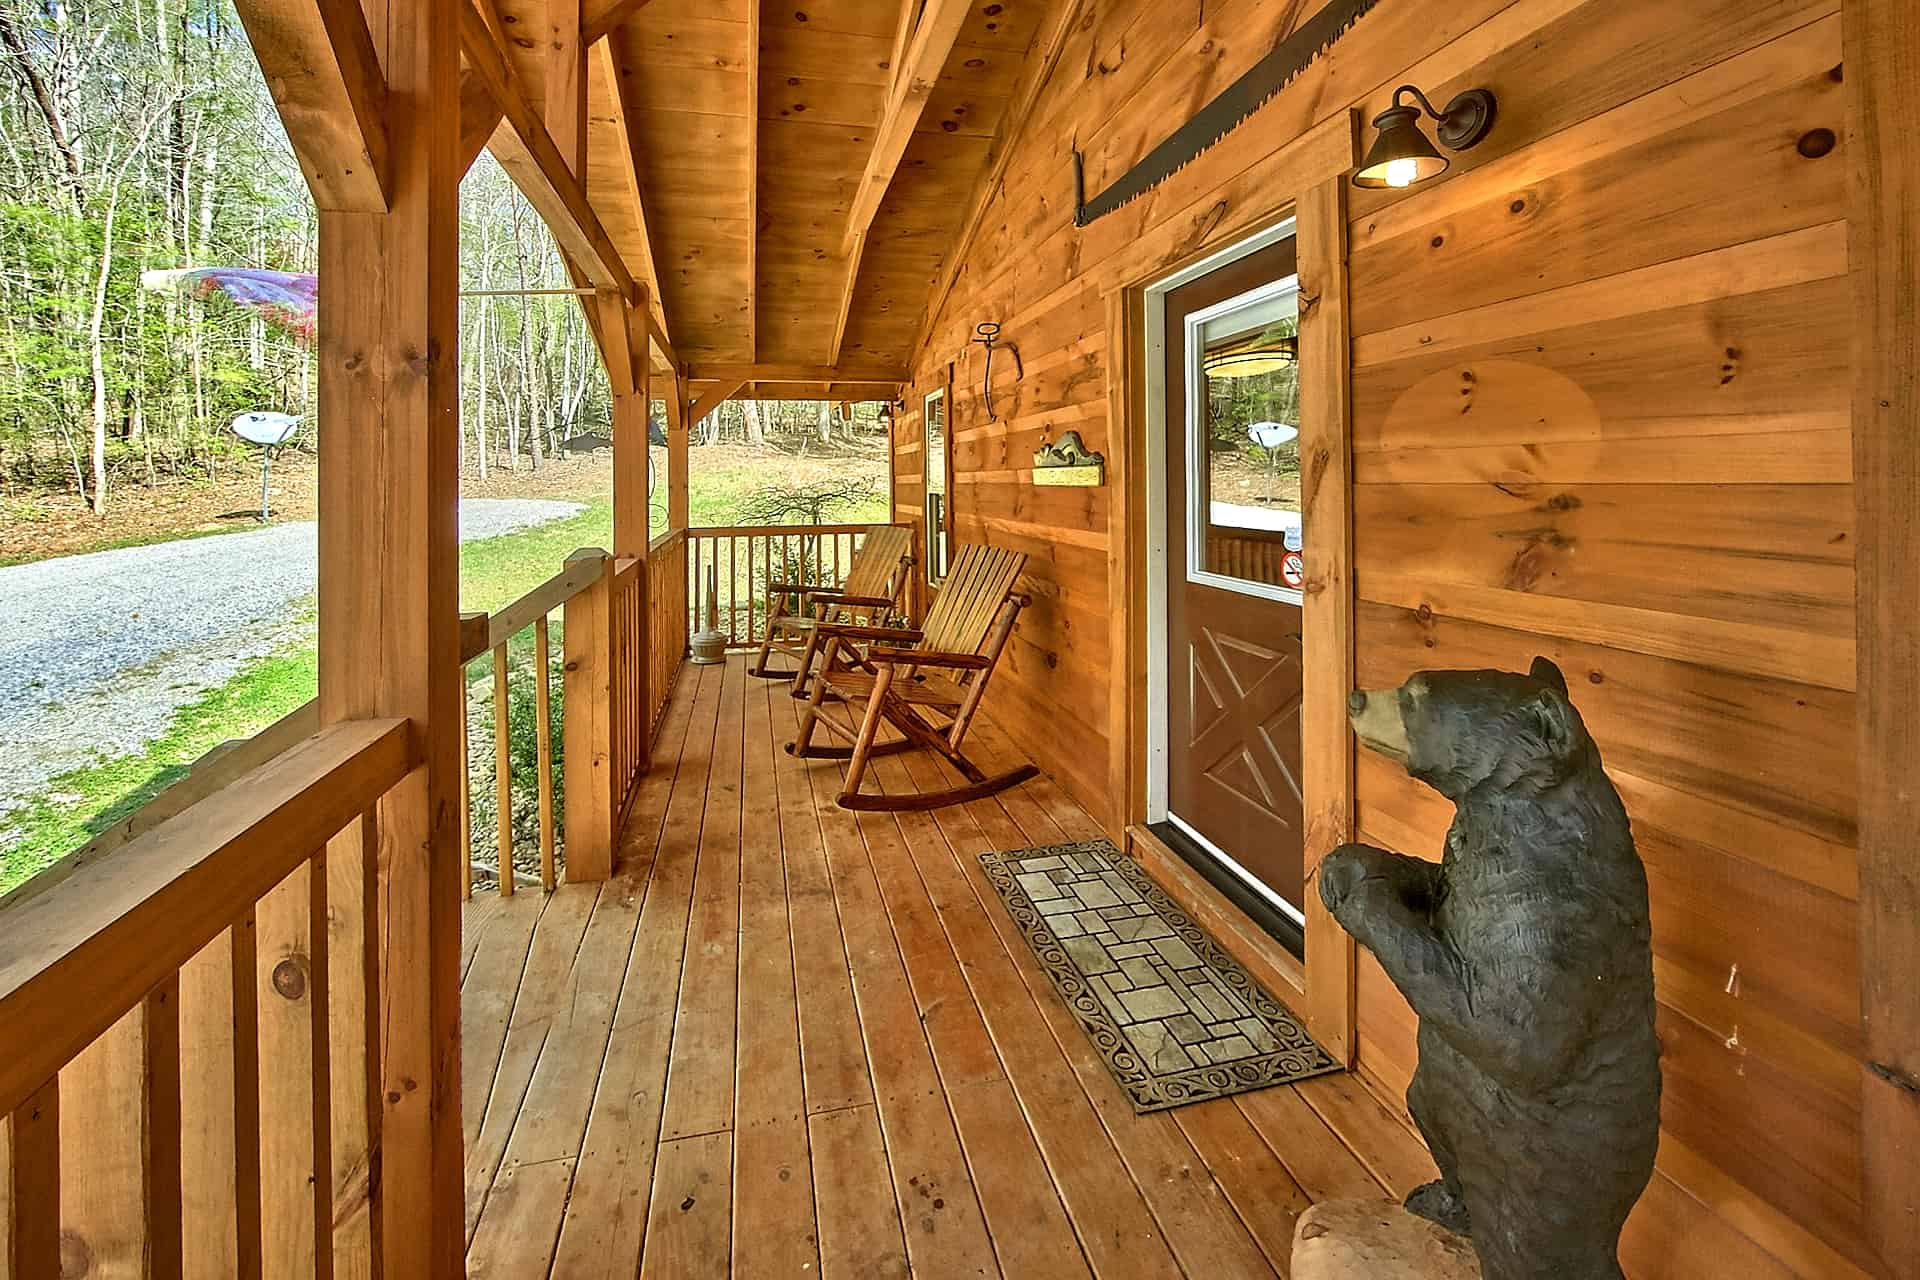 cabins black dating site Days end campground has rv sites and cabins for an unforgettable black hills vacation at any time of year showers, laundry, dump station, wifi available visit site.